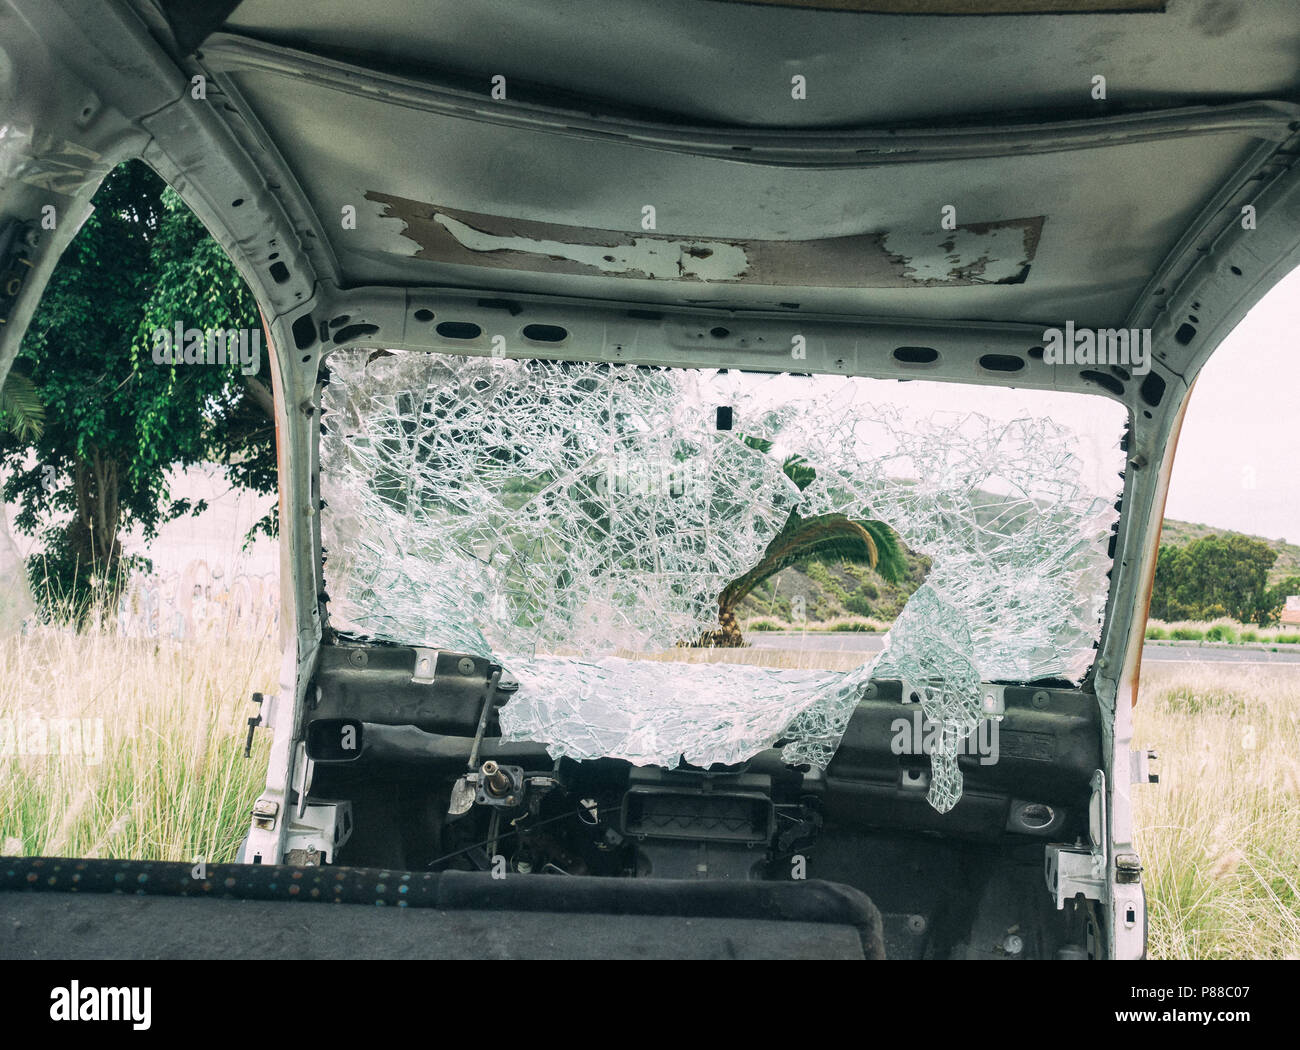 Broken windscreen on abandoned car in countryside - Stock Image